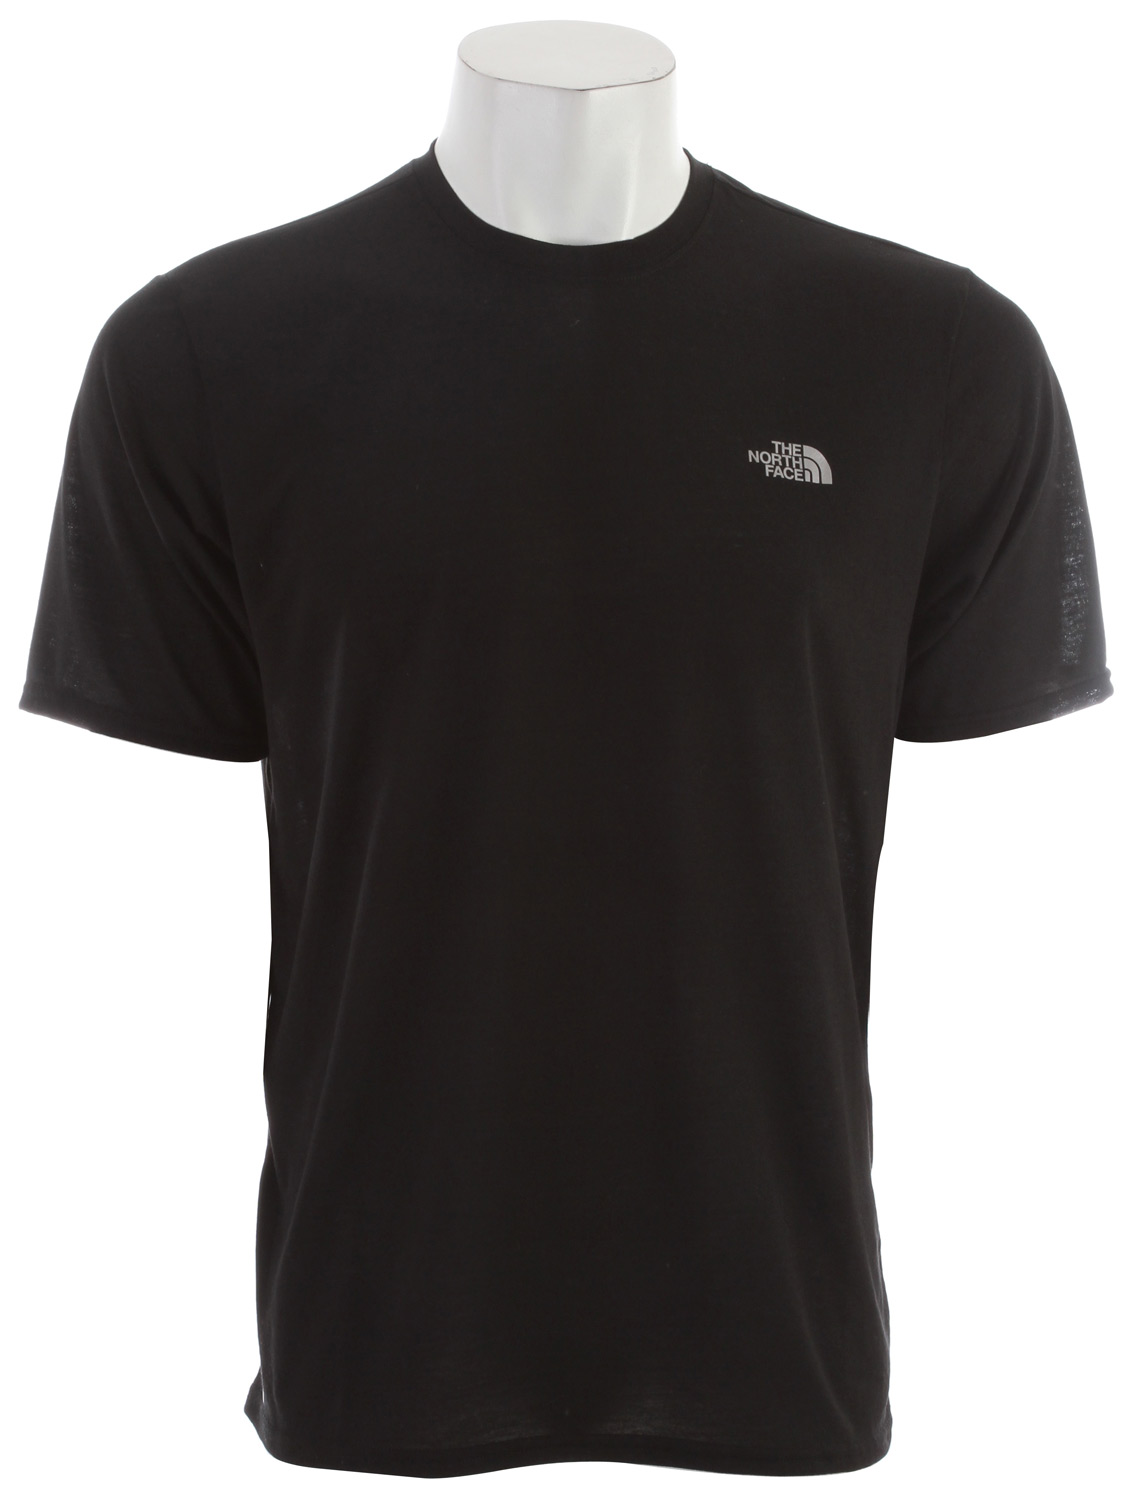 "Short-sleeve VaporWick tee provides excellent moisture management with a comfortable cotton feel, perfect for in-the-gym training. Key Features of the The North Face Reaxion Crew T-Shirt: Soft, ultralight fabric Relaxed fit Set-in sleeves Drop-tail hem Locker loop Center back: 27.5"" Fabric: 140 g/m2 100% polyester jersey - $16.95"